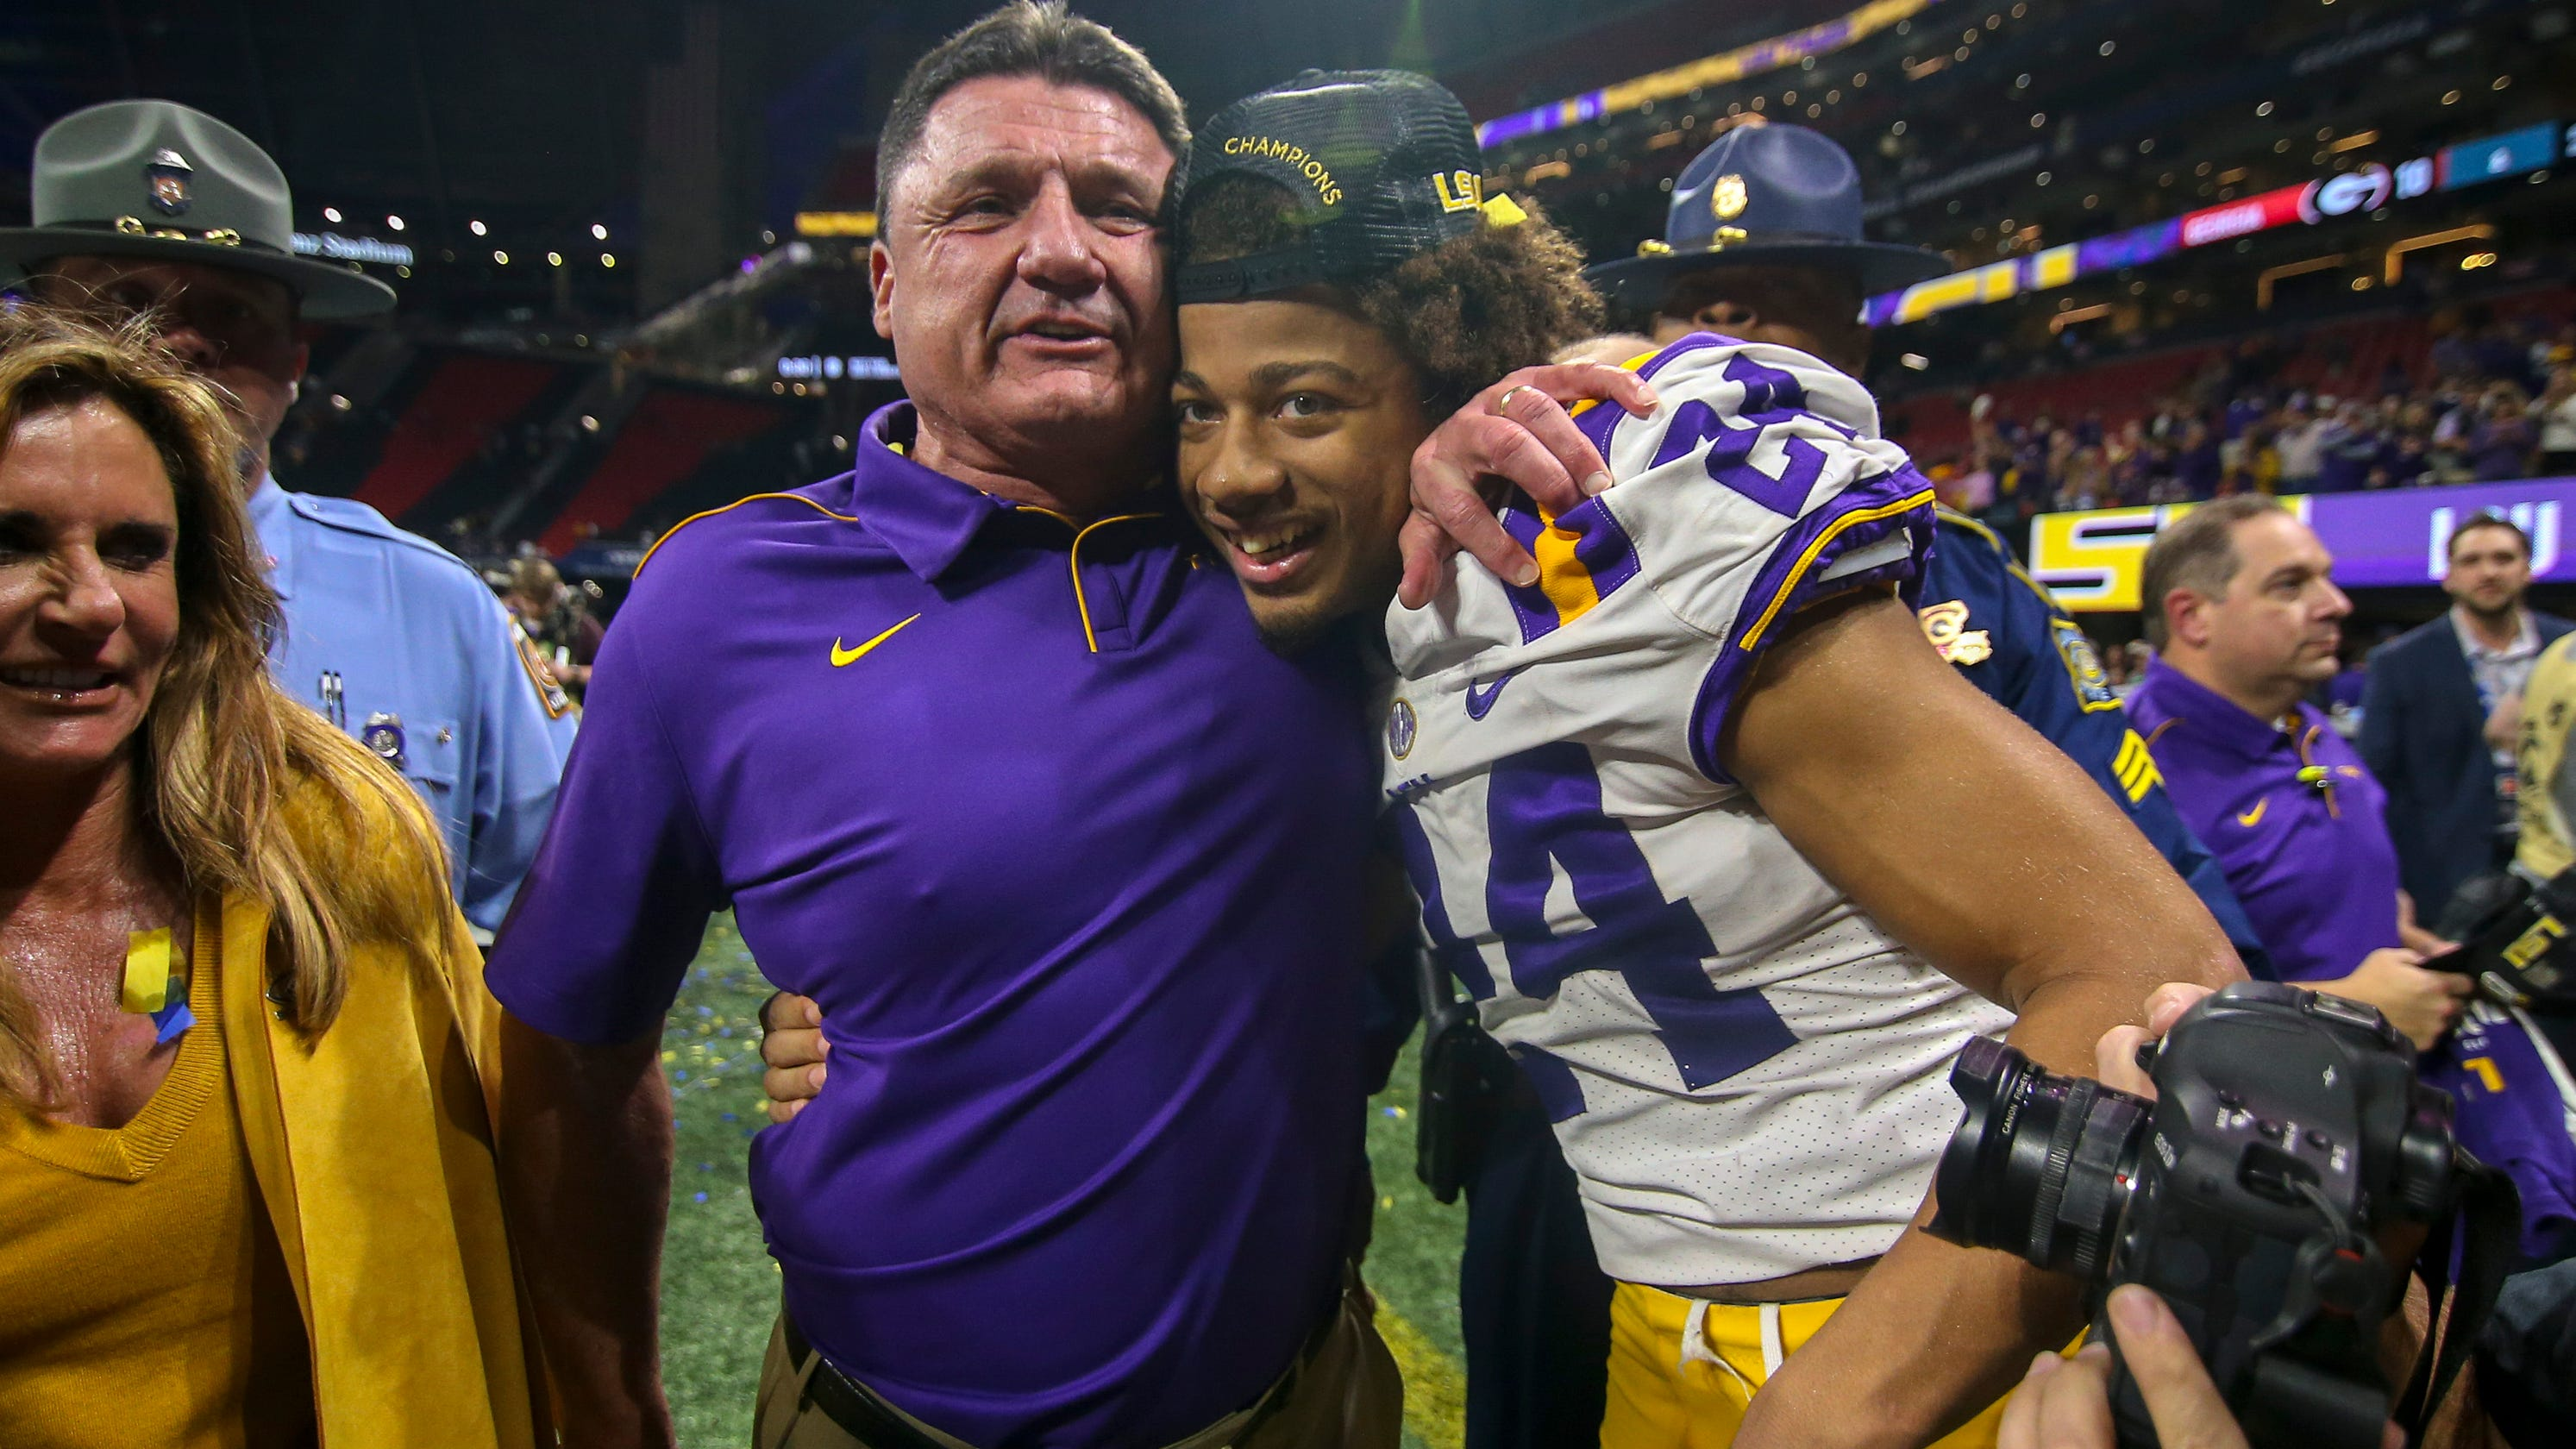 LSU coach Ed Orgeron says more players could opt out due to COVID-19